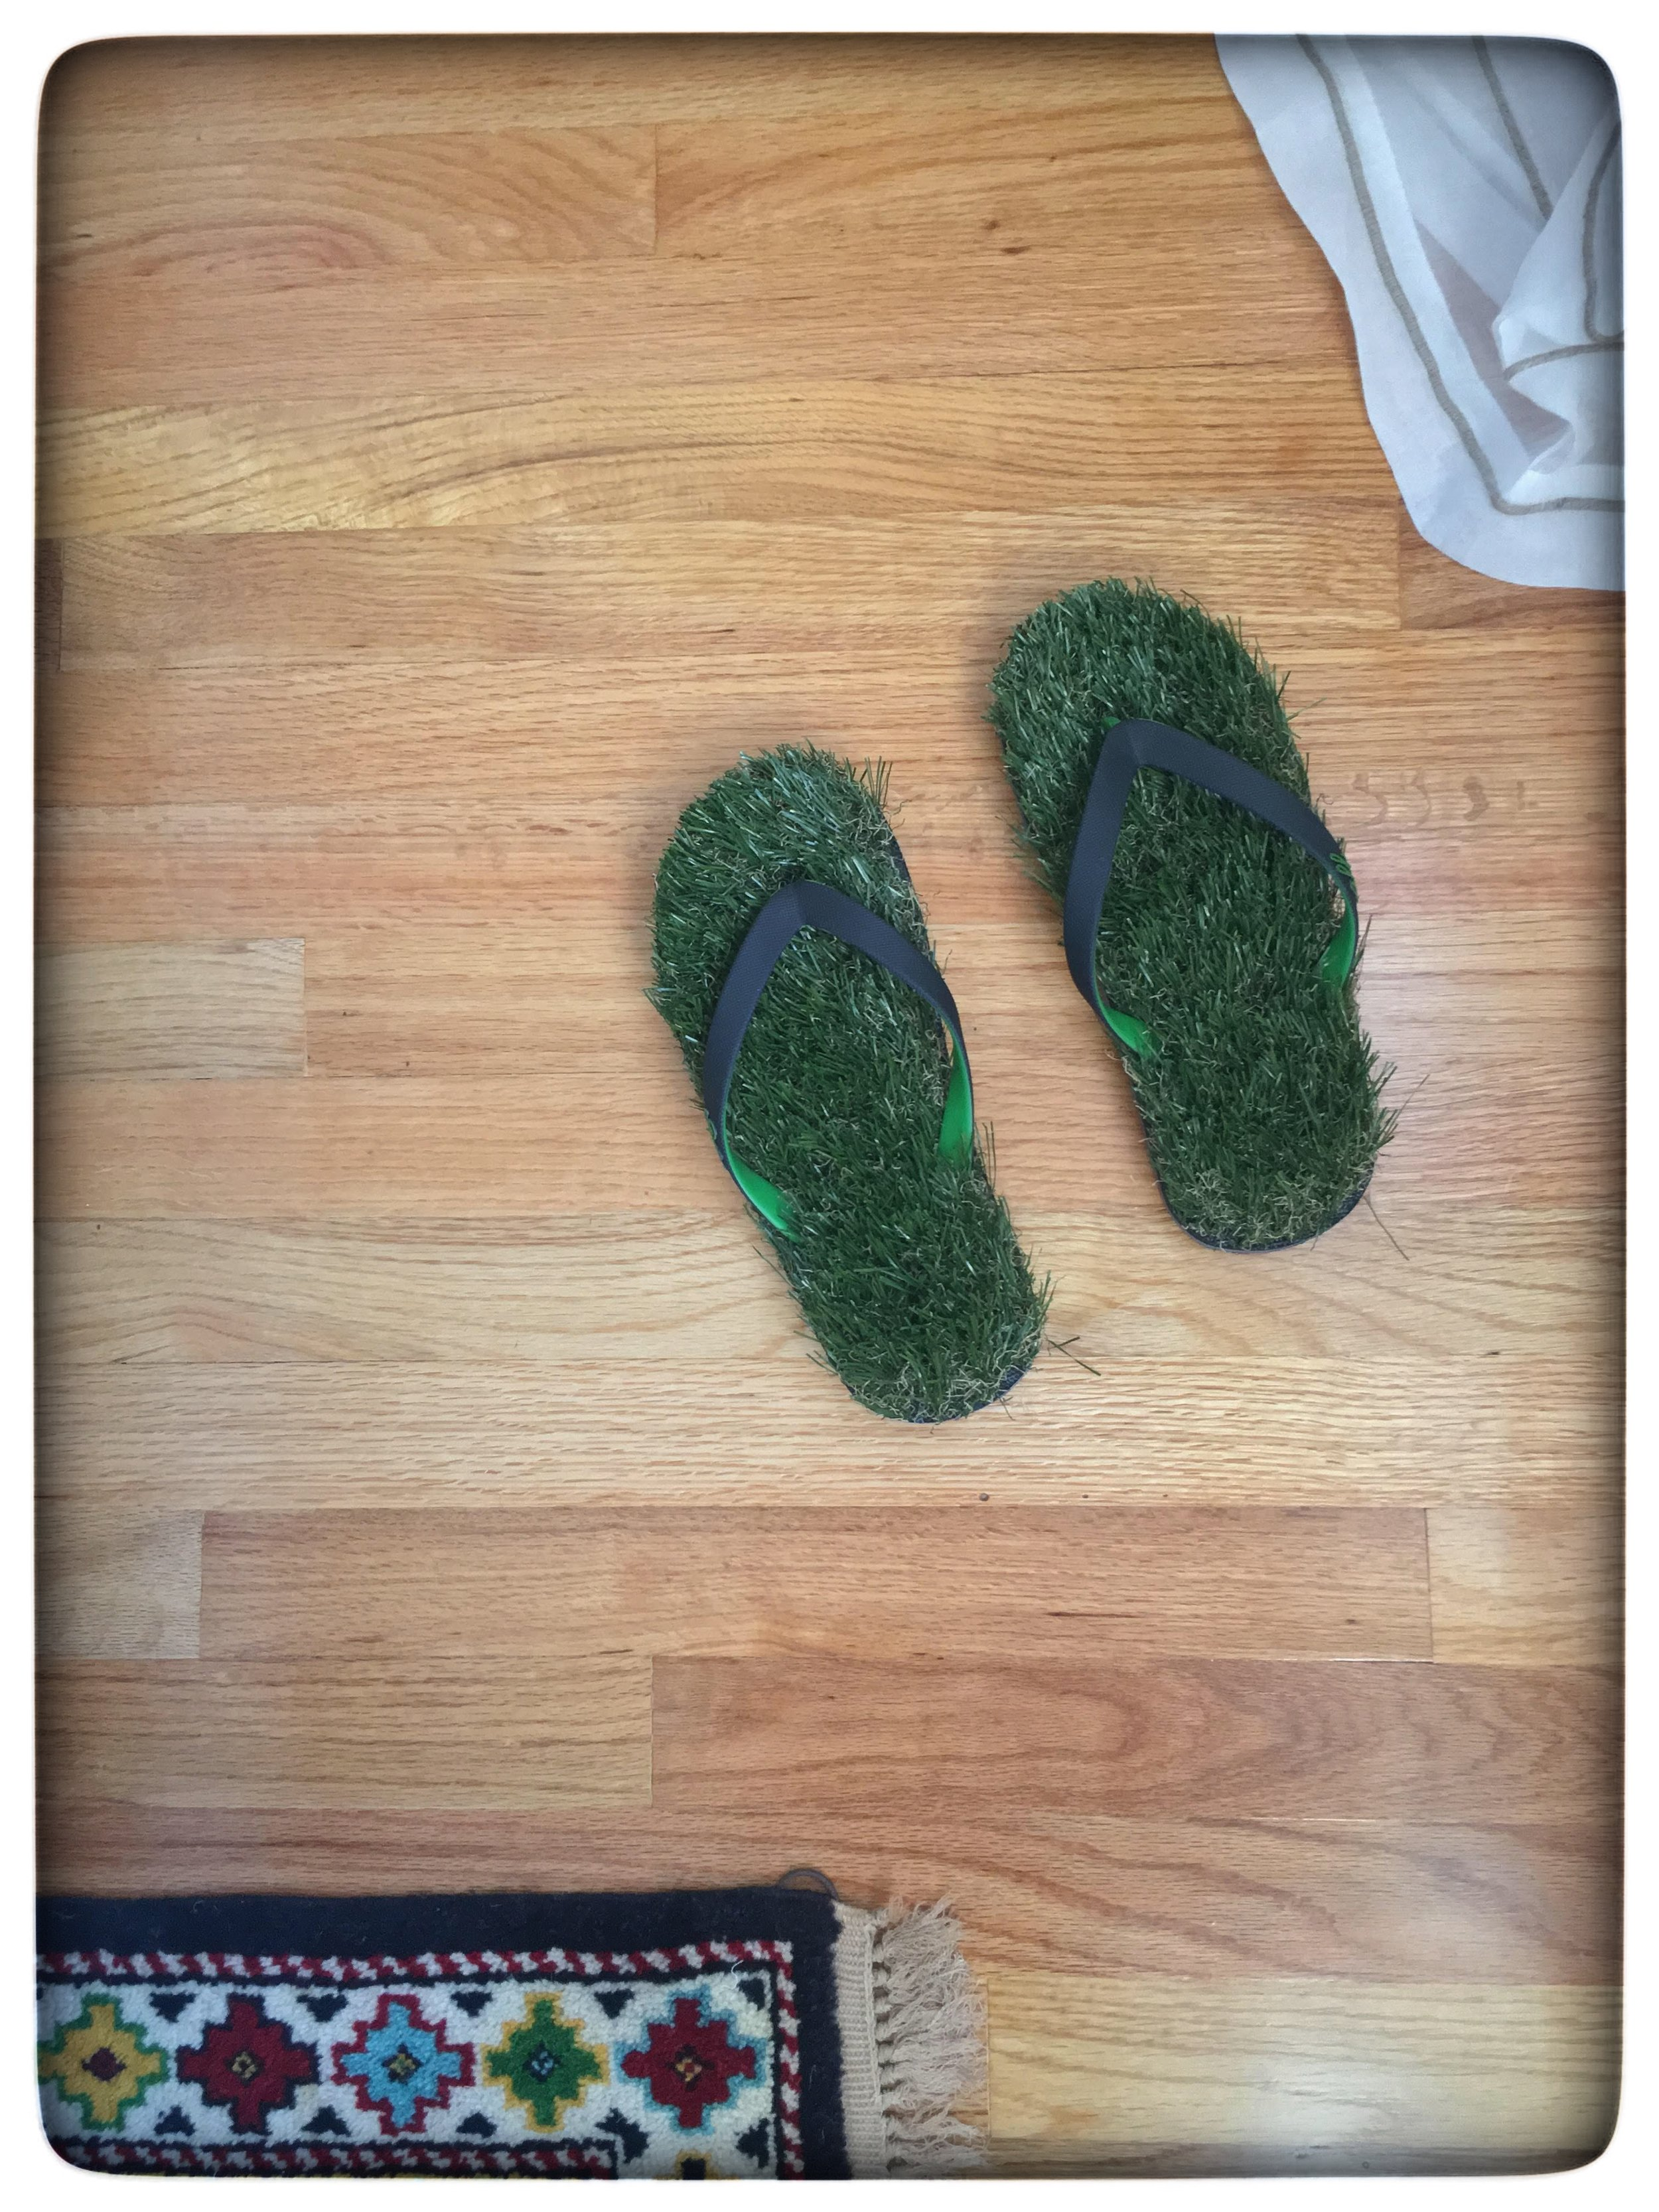 bringing nature in - Of course it wouldn't be a room by me if I didn't add a touch of whimsy. As if the hotel bell on the nightstand was not enough for some laughs, I just had to get these grass flip flops and you know what, it's been a great hit with those who have seen the room in person. Why not have a little fun every now and then, right? Had a blast creating the fresh flower arrangements for this challenge and the room smells fantastic! And as we all know it's always great to kick your shoes off once in a while and walk in the grass even if it's inside.